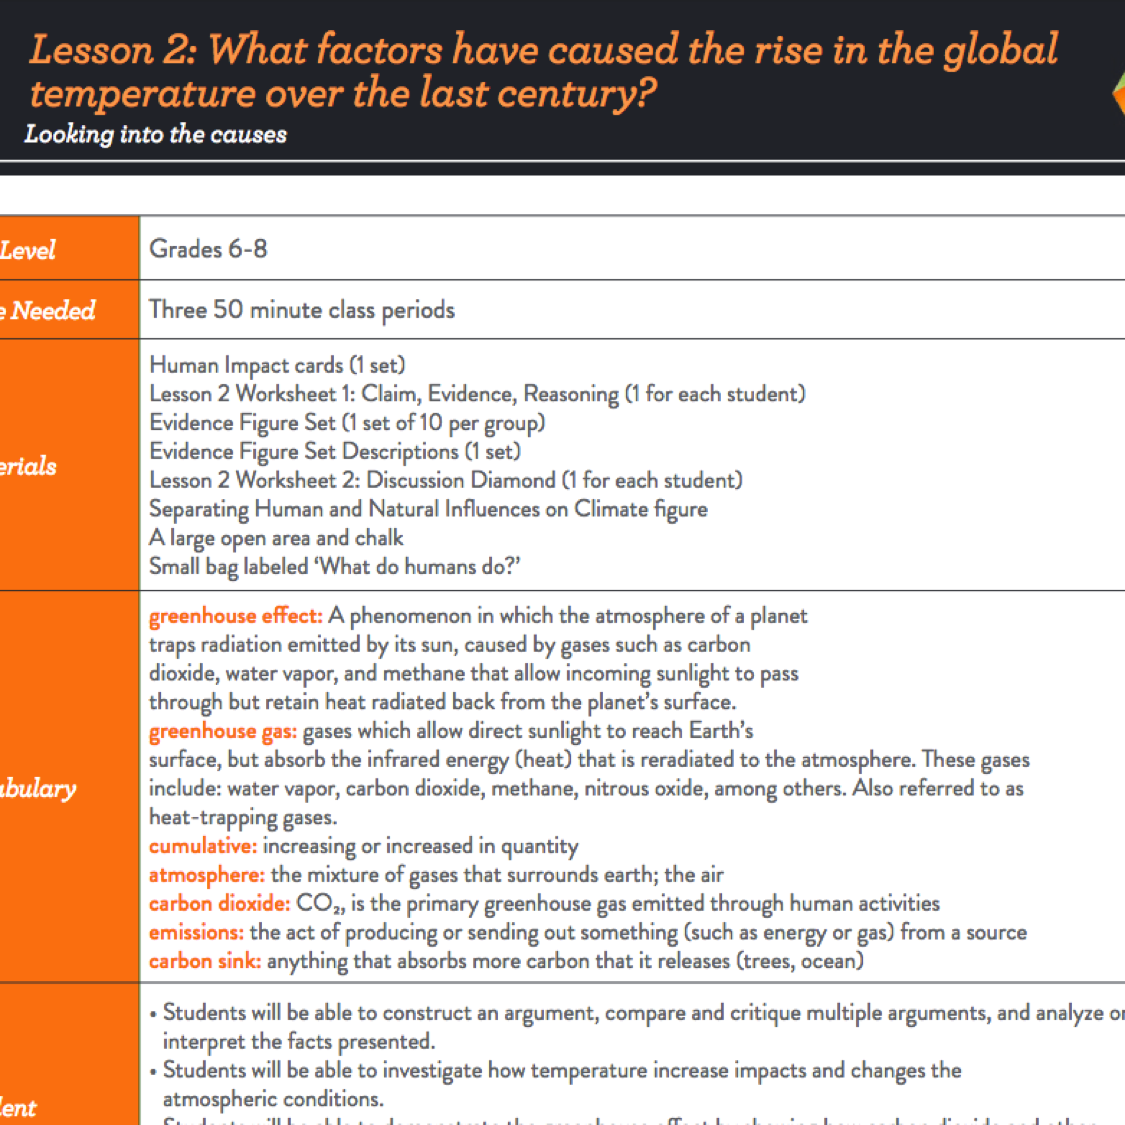 worksheet Claim Evidence Reasoning Worksheets next generation climate lesson 2 what factors have caused the rise in global temperature over last century